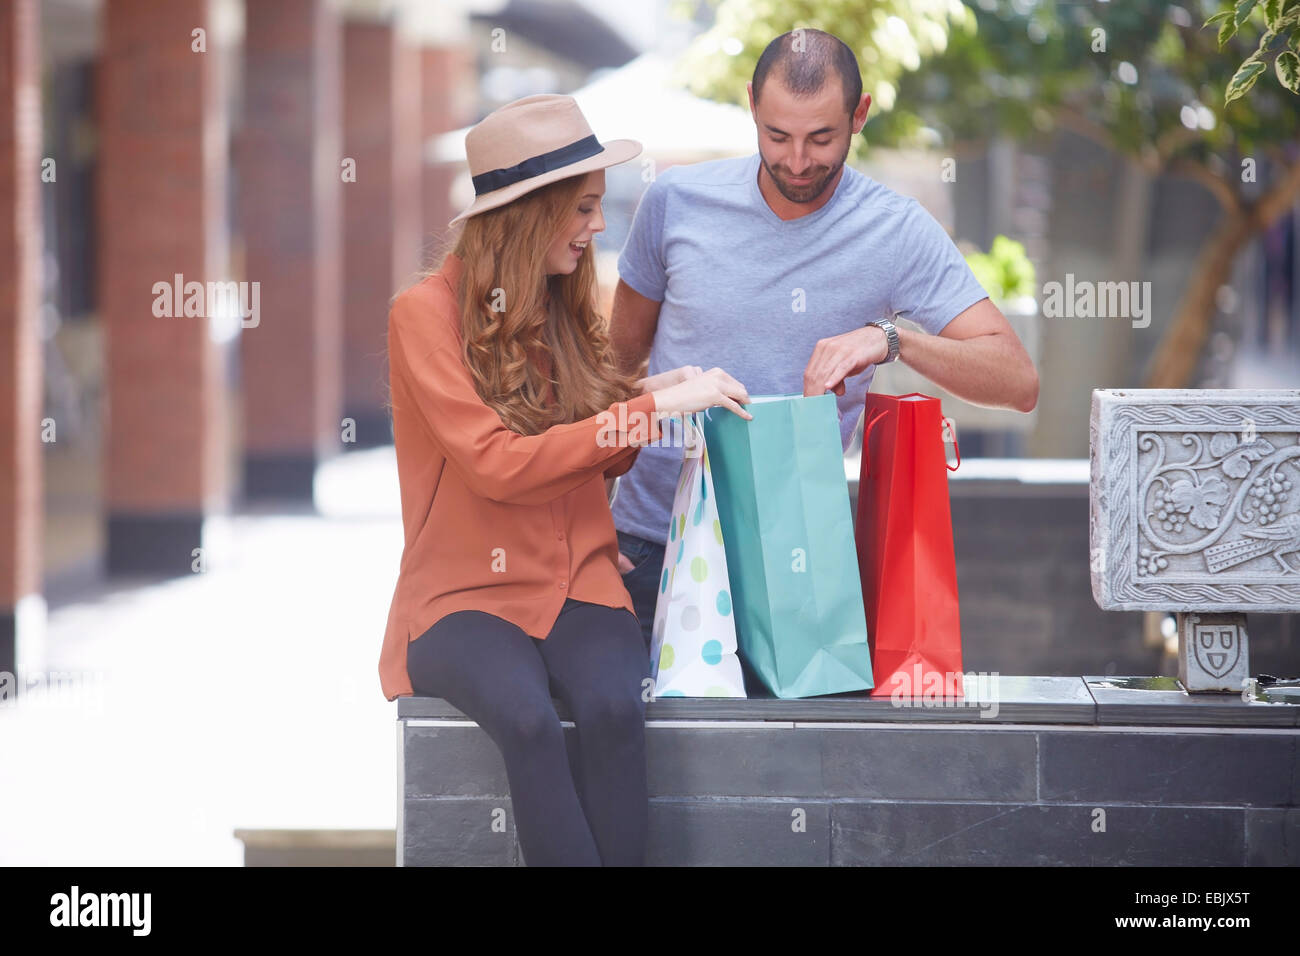 Young woman sitting on wall with shopping bags, man looking in bags - Stock Image